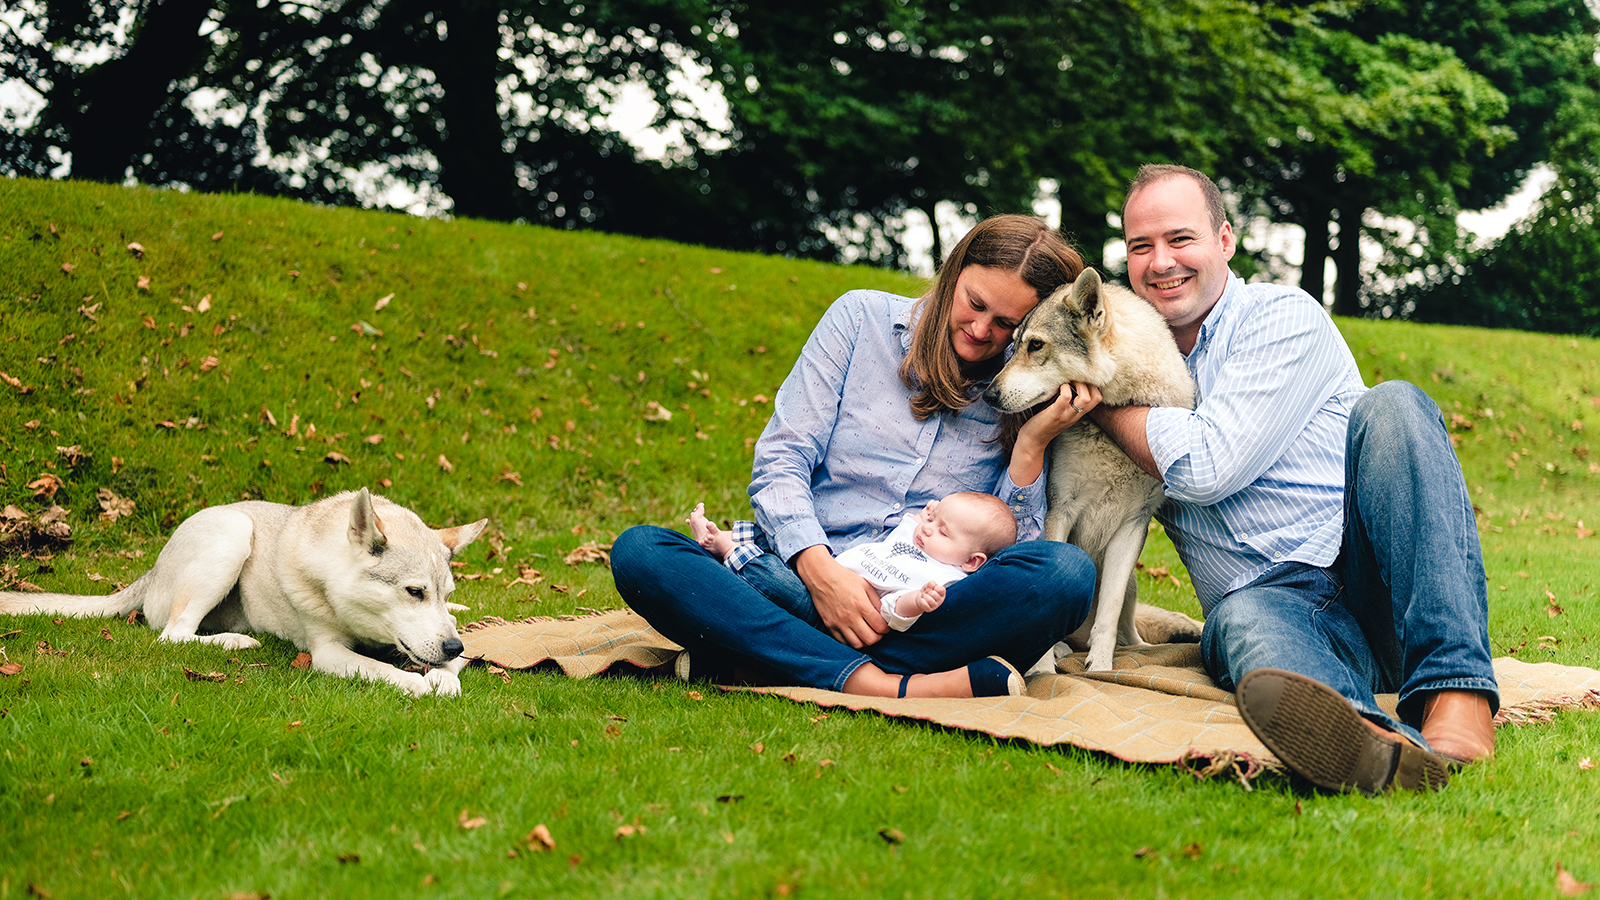 a family pose with their newborn child and two husky dogs